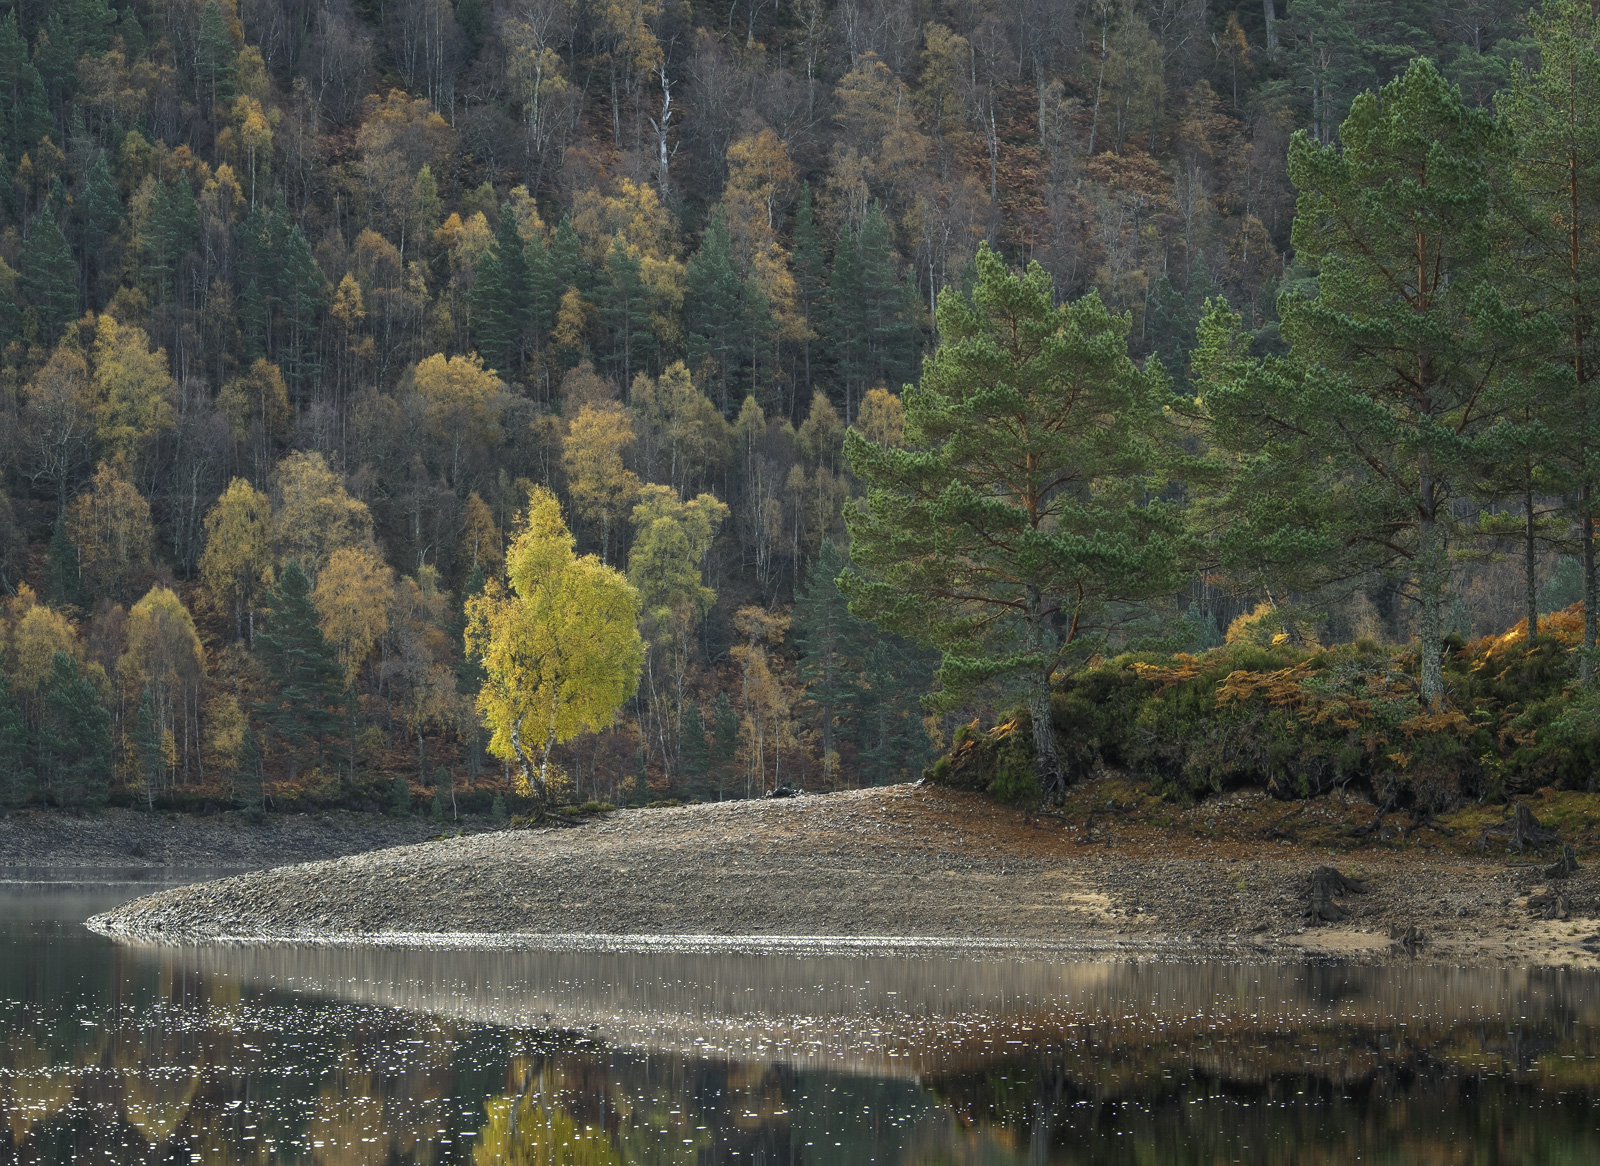 This island birch tree isolated at the end of a gravel spit is very well known in Glen Affric and pretty irresistible to photograph...